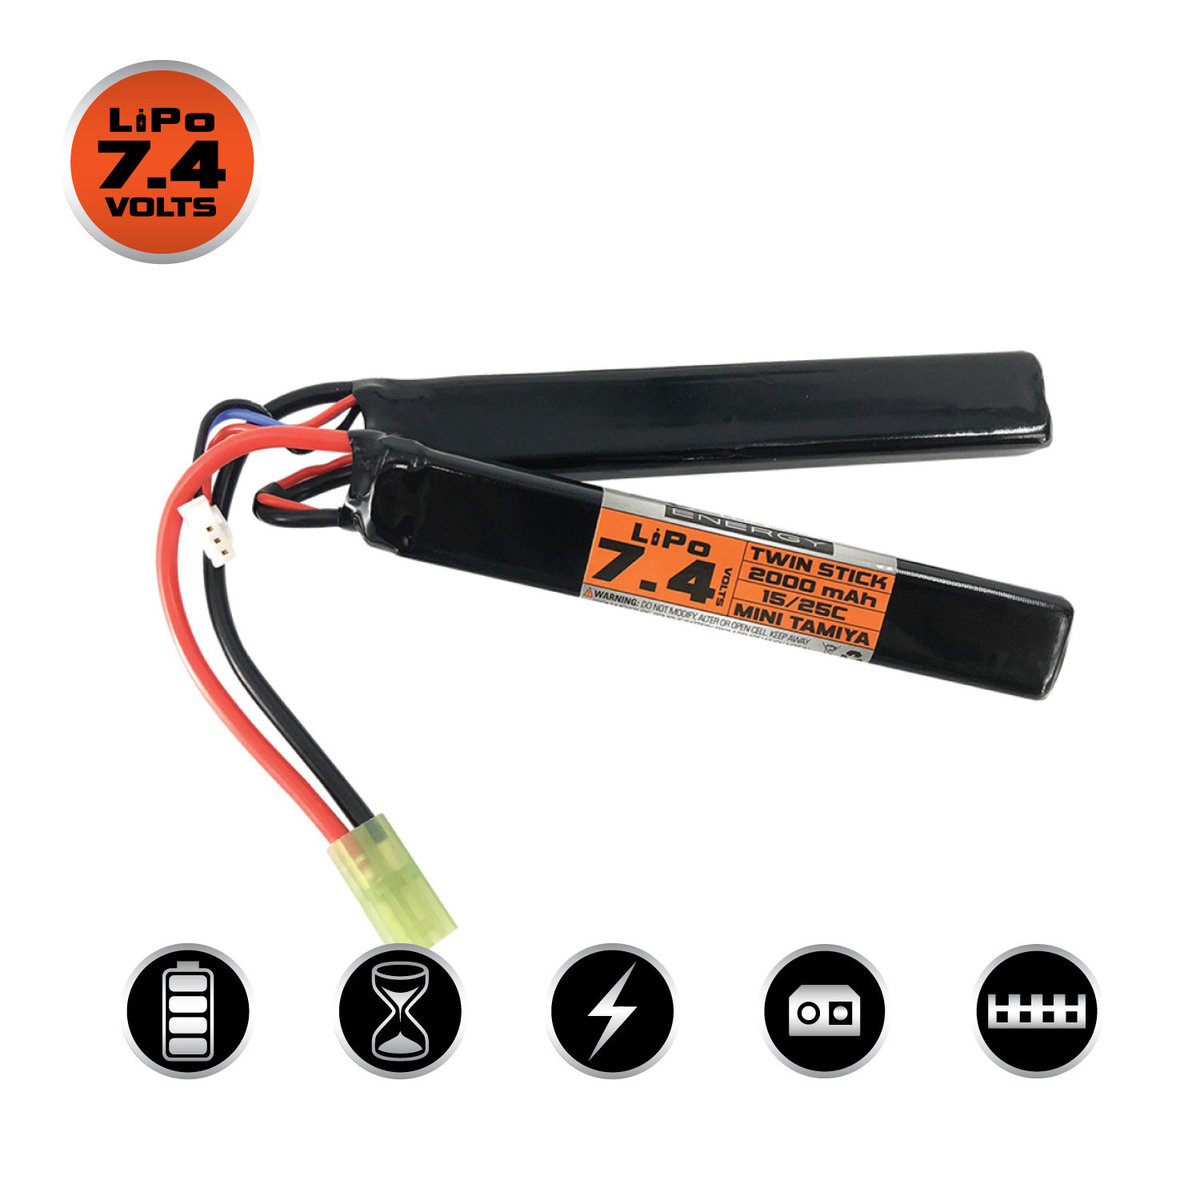 View larger image of Valken LiPo 7.4V 2000mAh 25C Split Airsoft Battery (Small Tamiya)